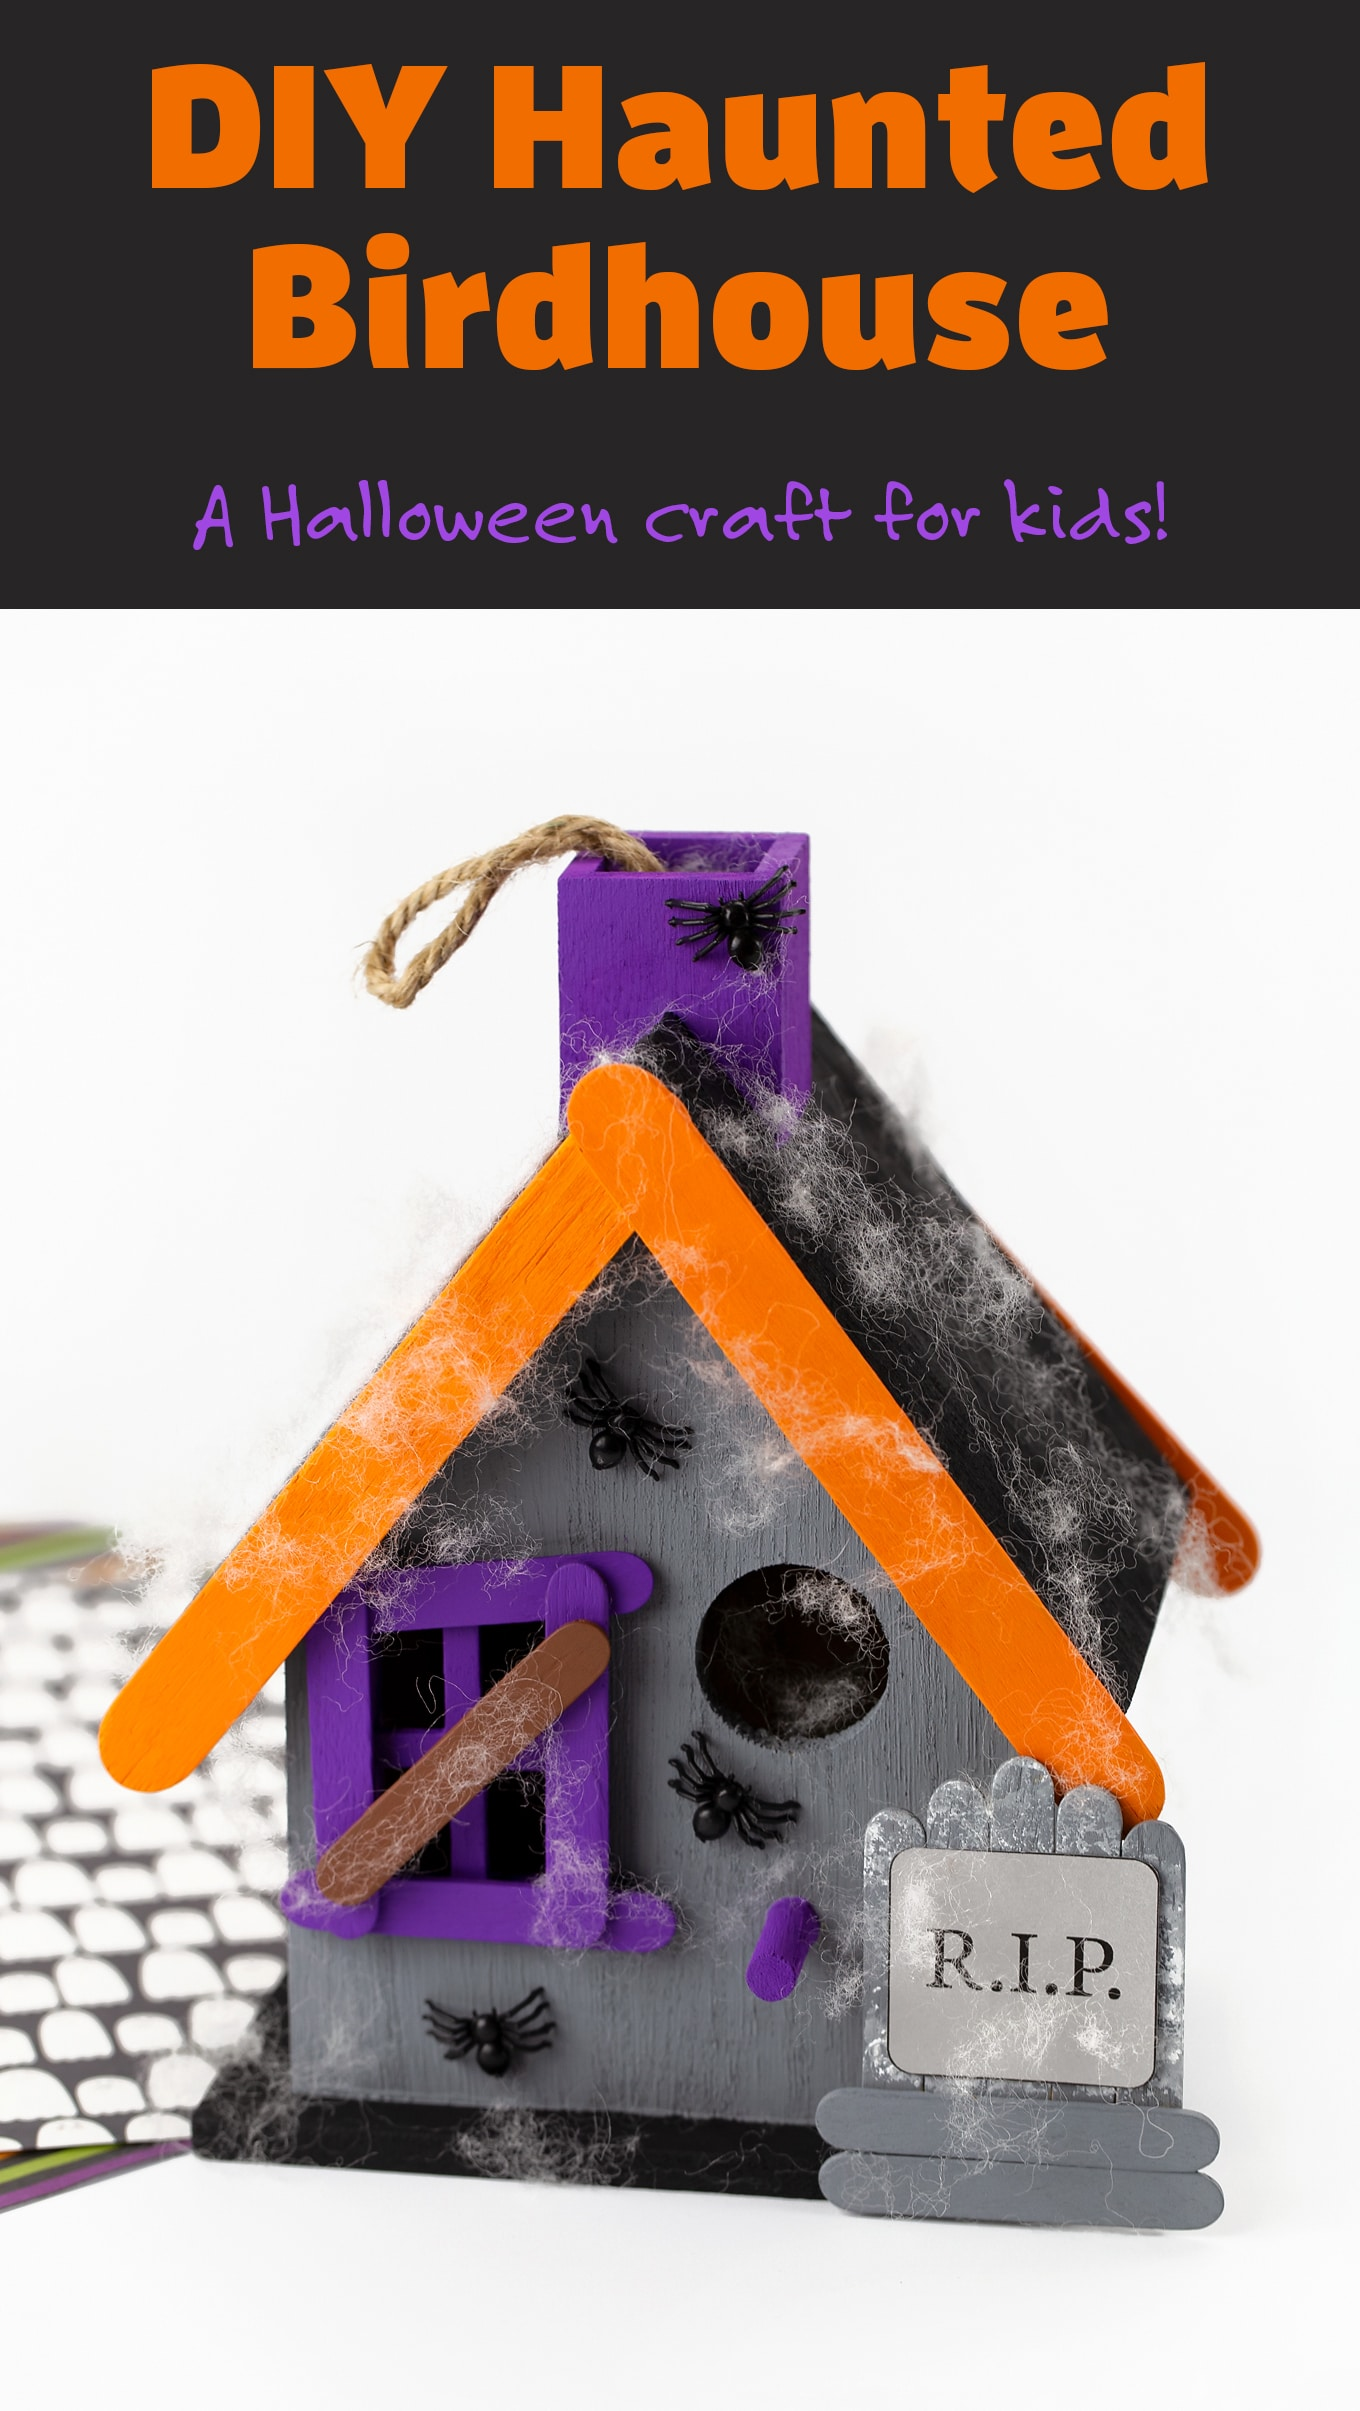 Learn how to make a Haunted Birdhouse craft for kids! It's a little bit spooky, but a lot of fun to decorate for Halloween night! #hauntedbirdhouse #halloweencraft #craftforkids via @firefliesandmudpies